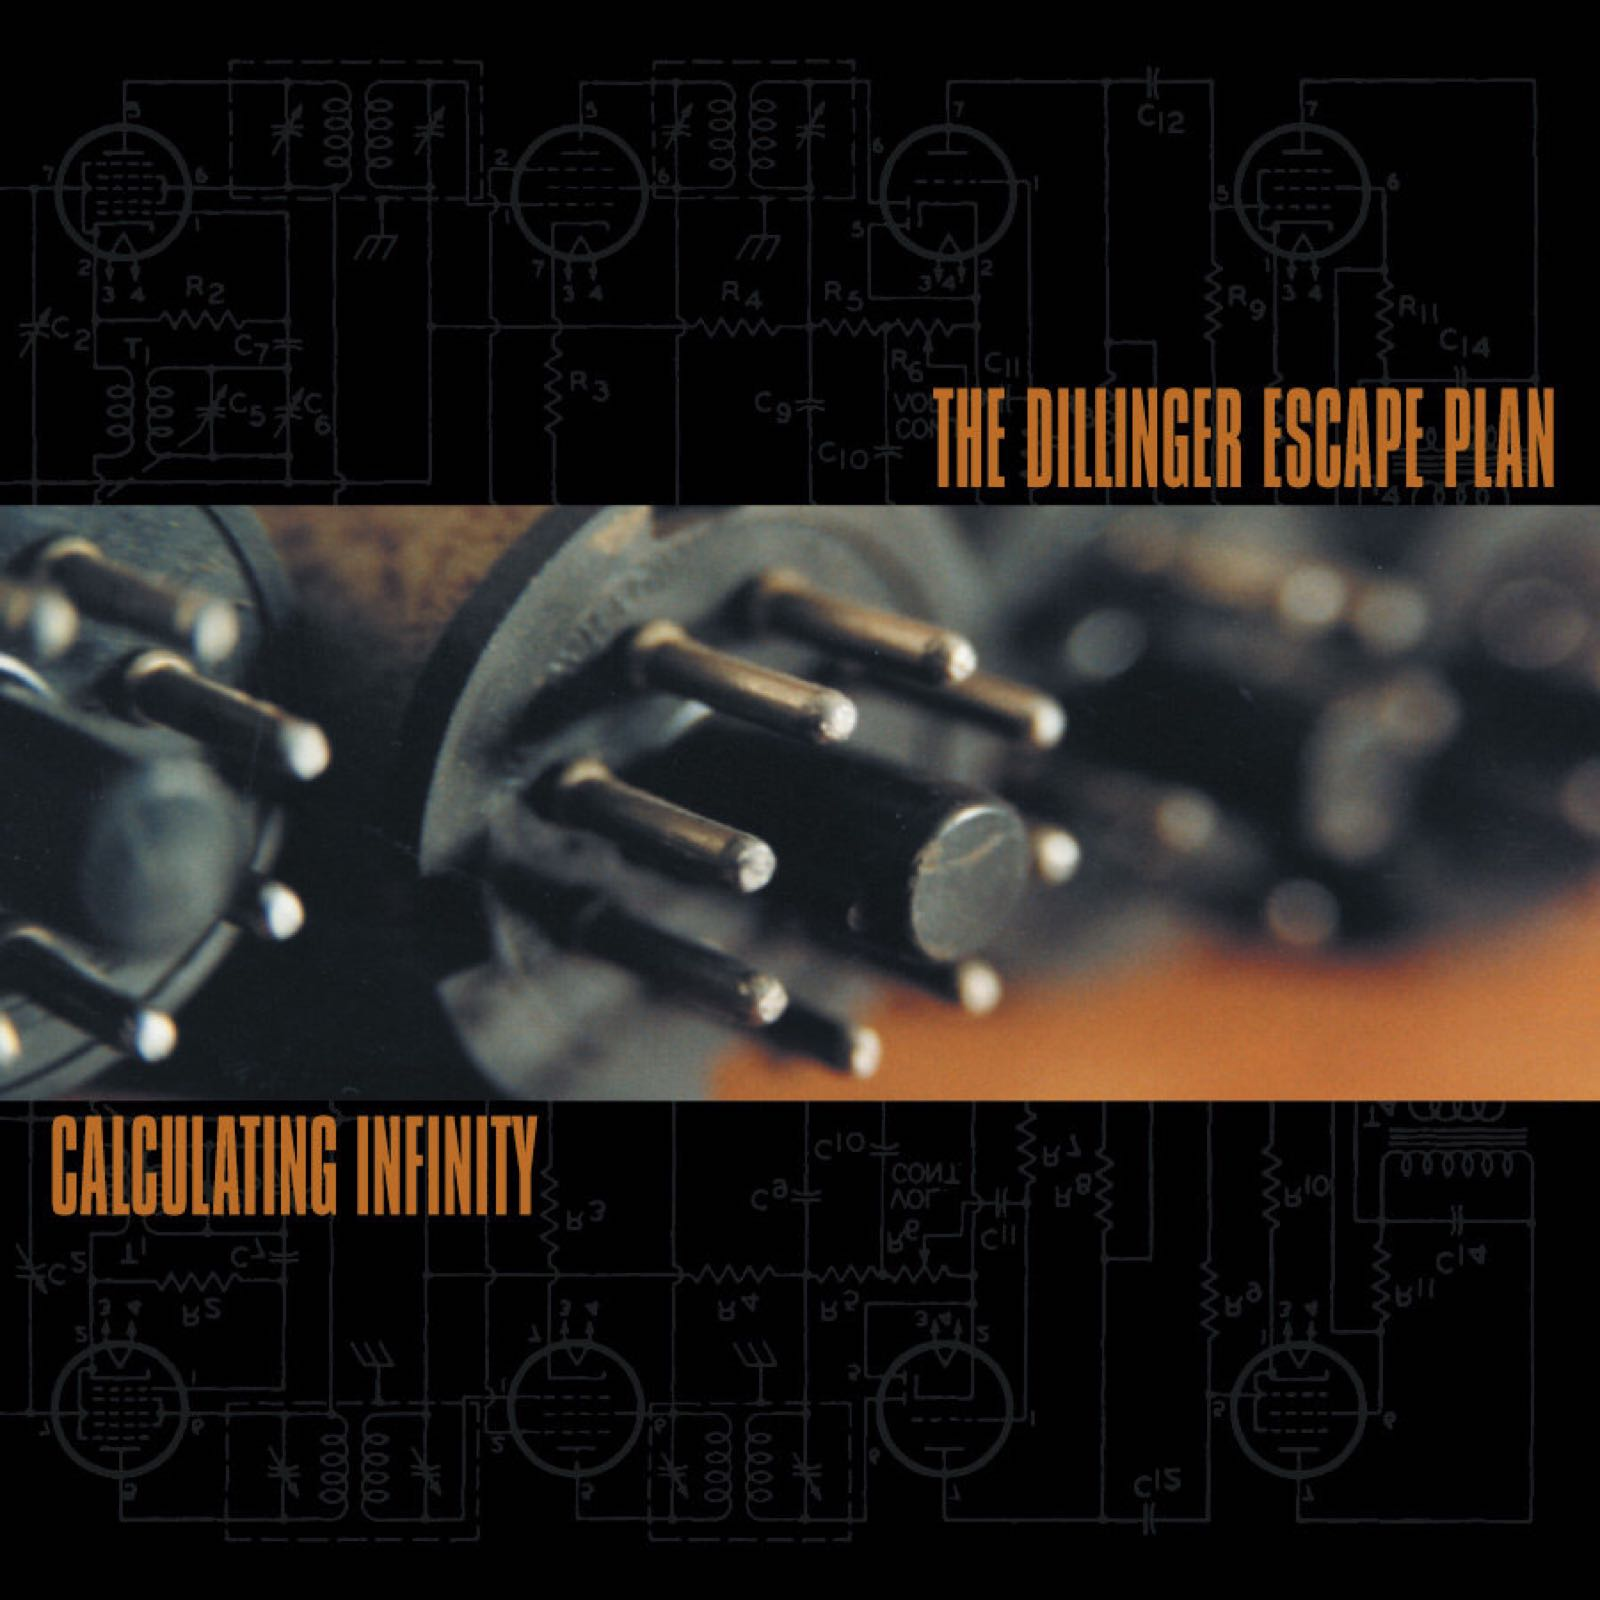 The Dillinger Escape Plan - Calculating Infinity [LP] (Neon Orange with Silver, Mustard and Grey Splatter)